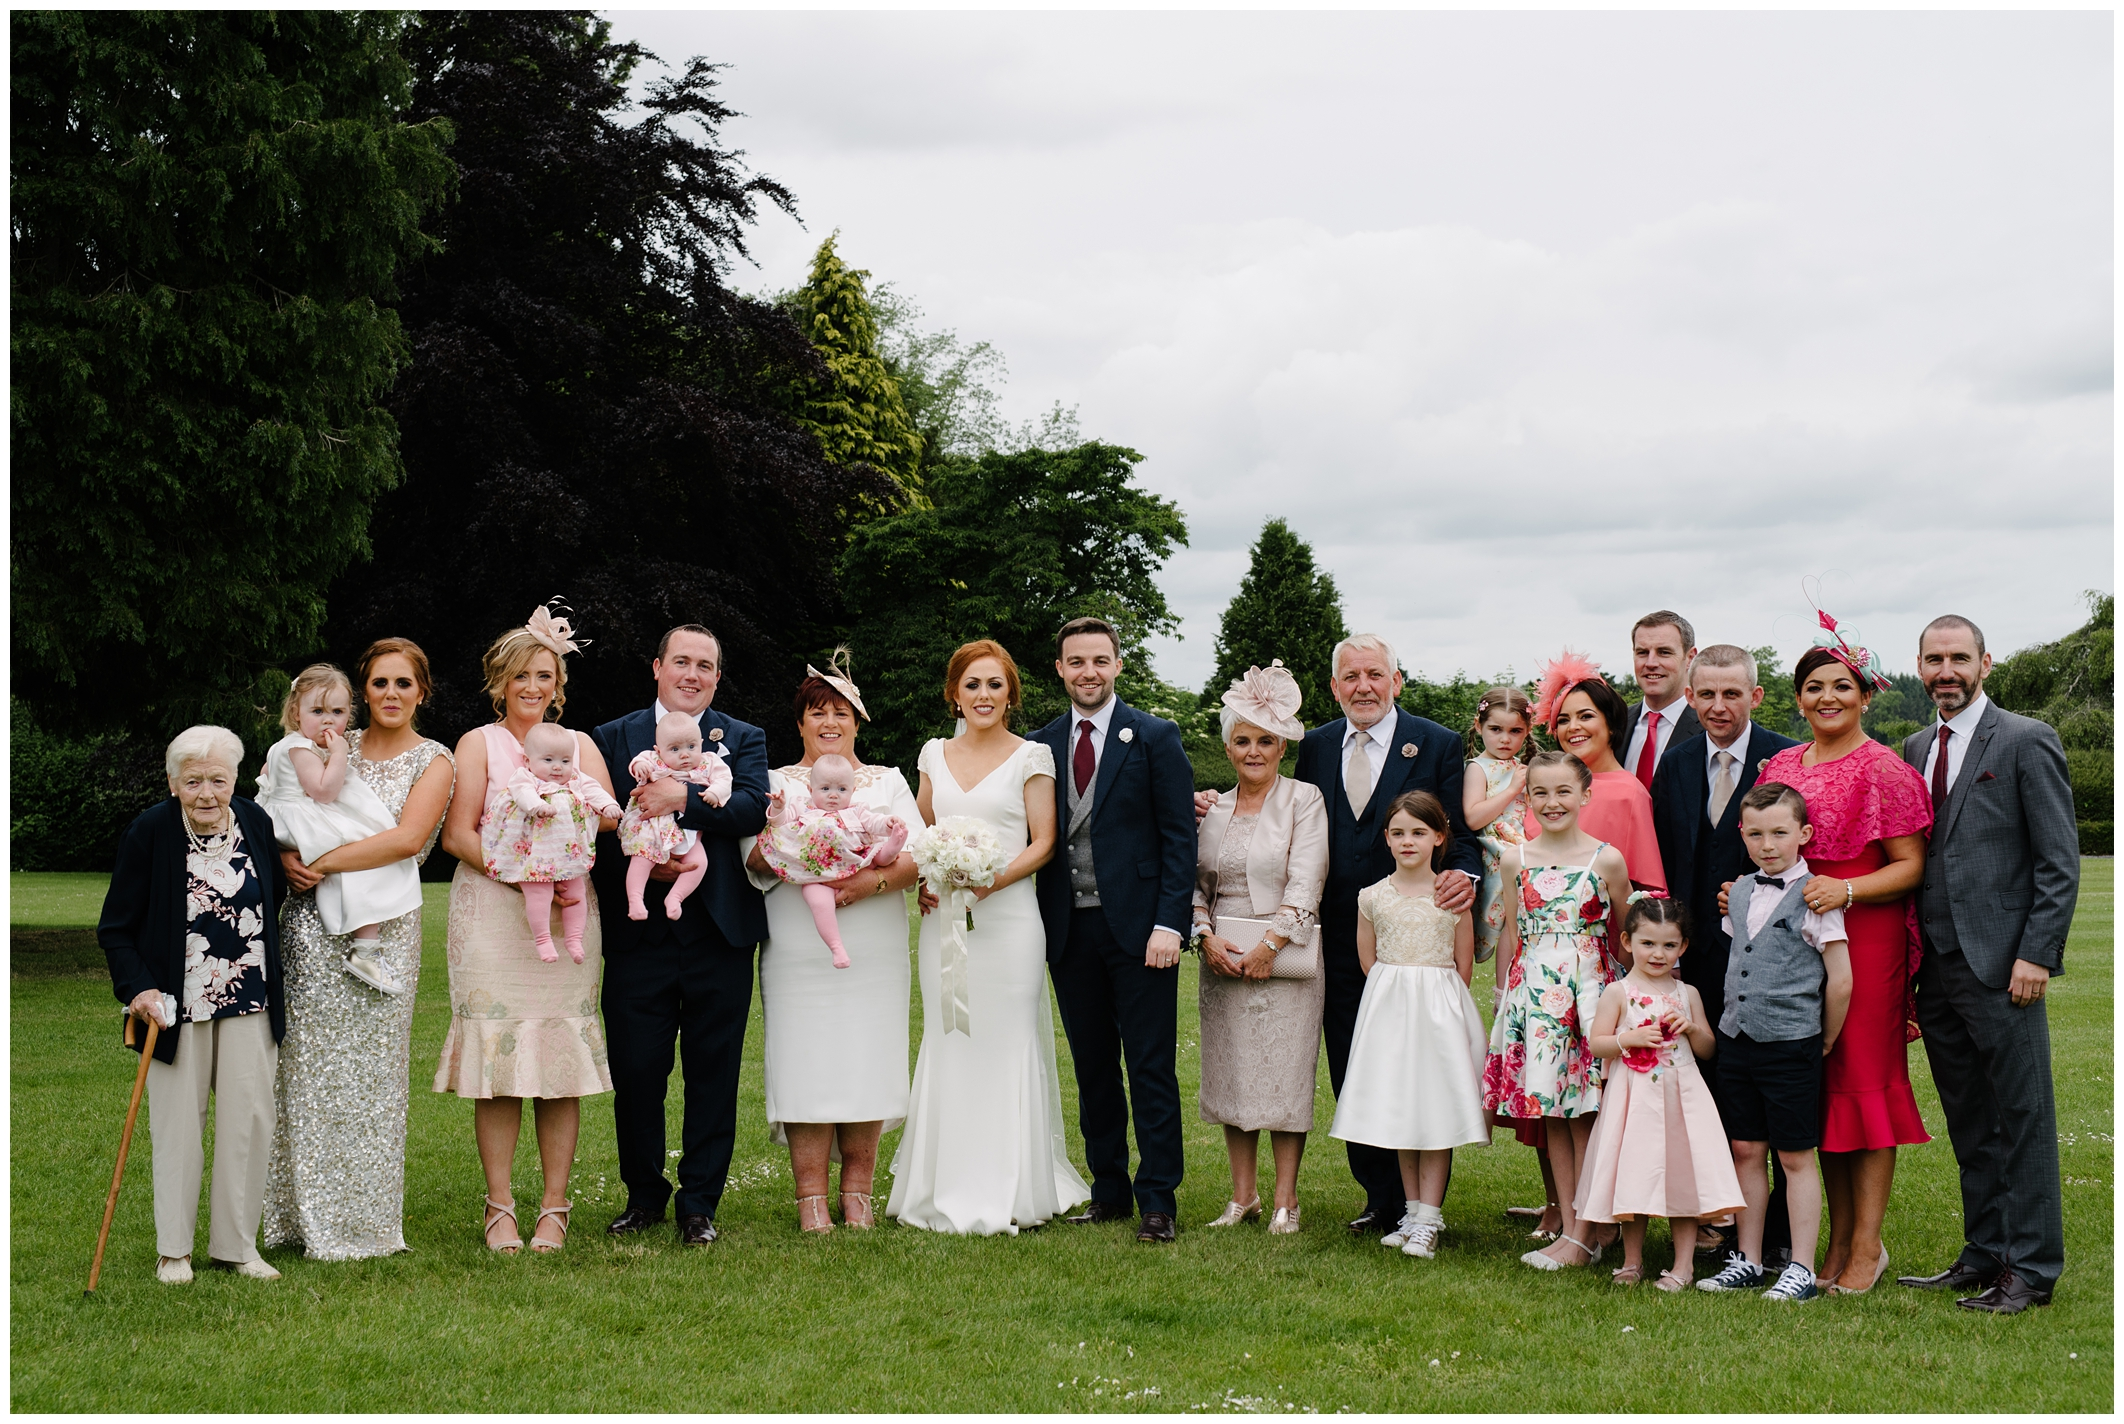 sinead_emmet_farnham_estate_wedding_jude_browne_photography_0136.jpg